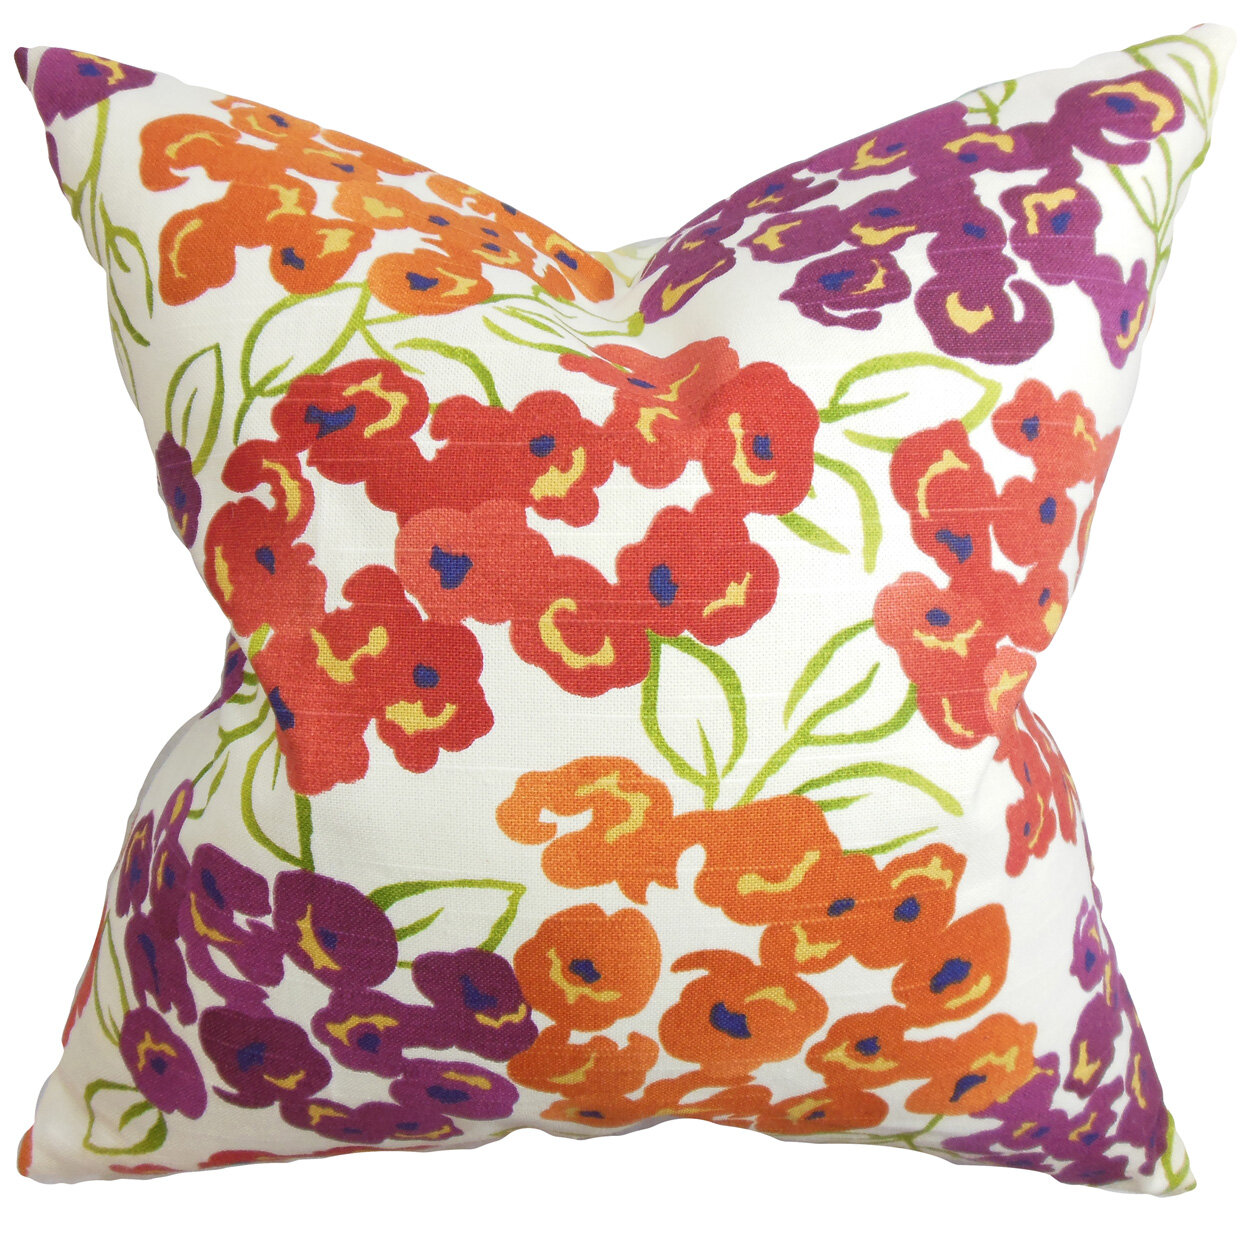 The Pillow Collection Heloise Floral Throw Pillow Cover